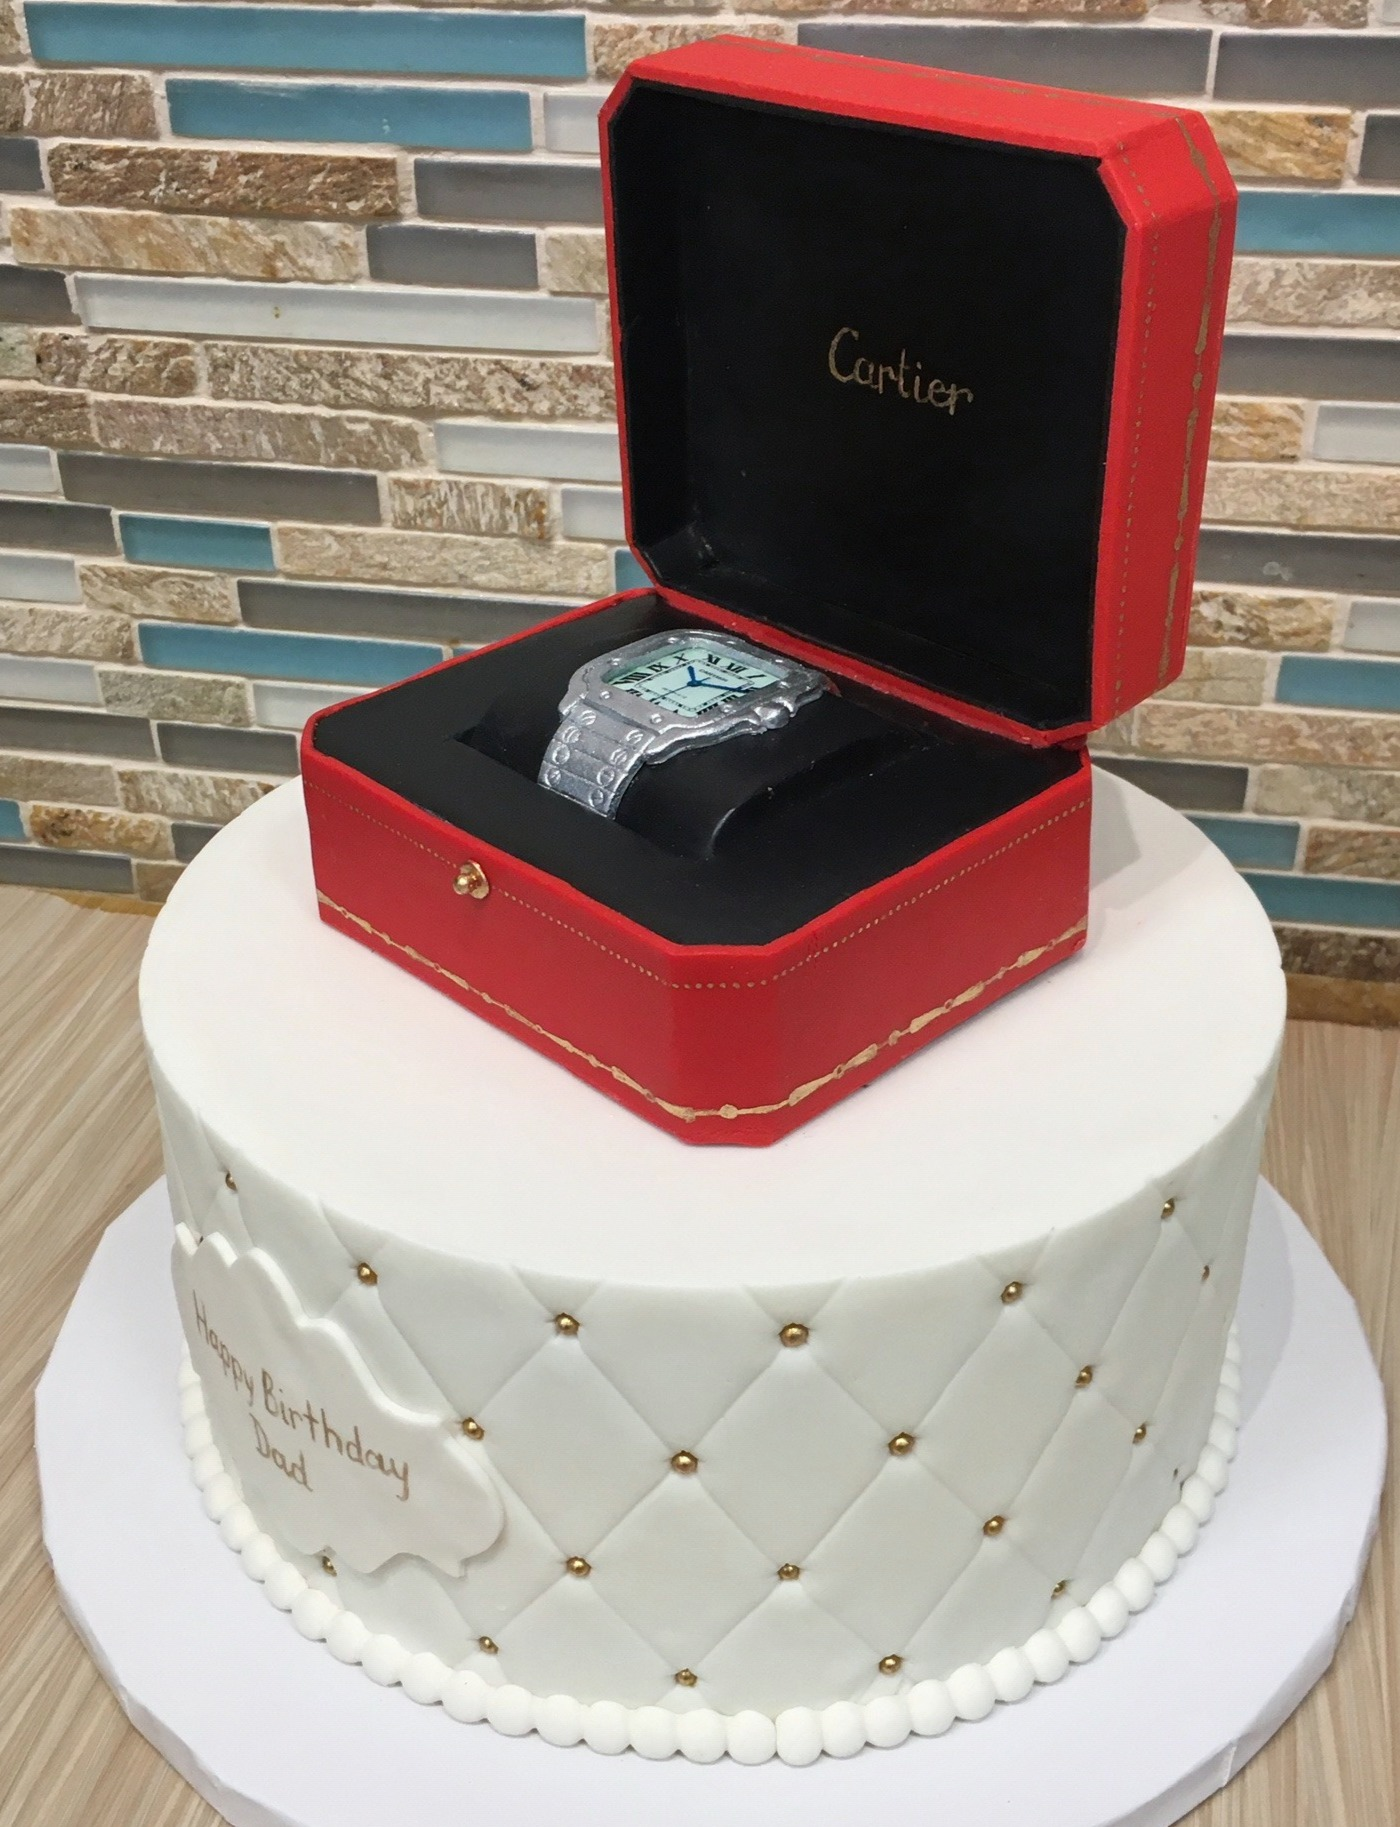 Cartier Watch Box Cake